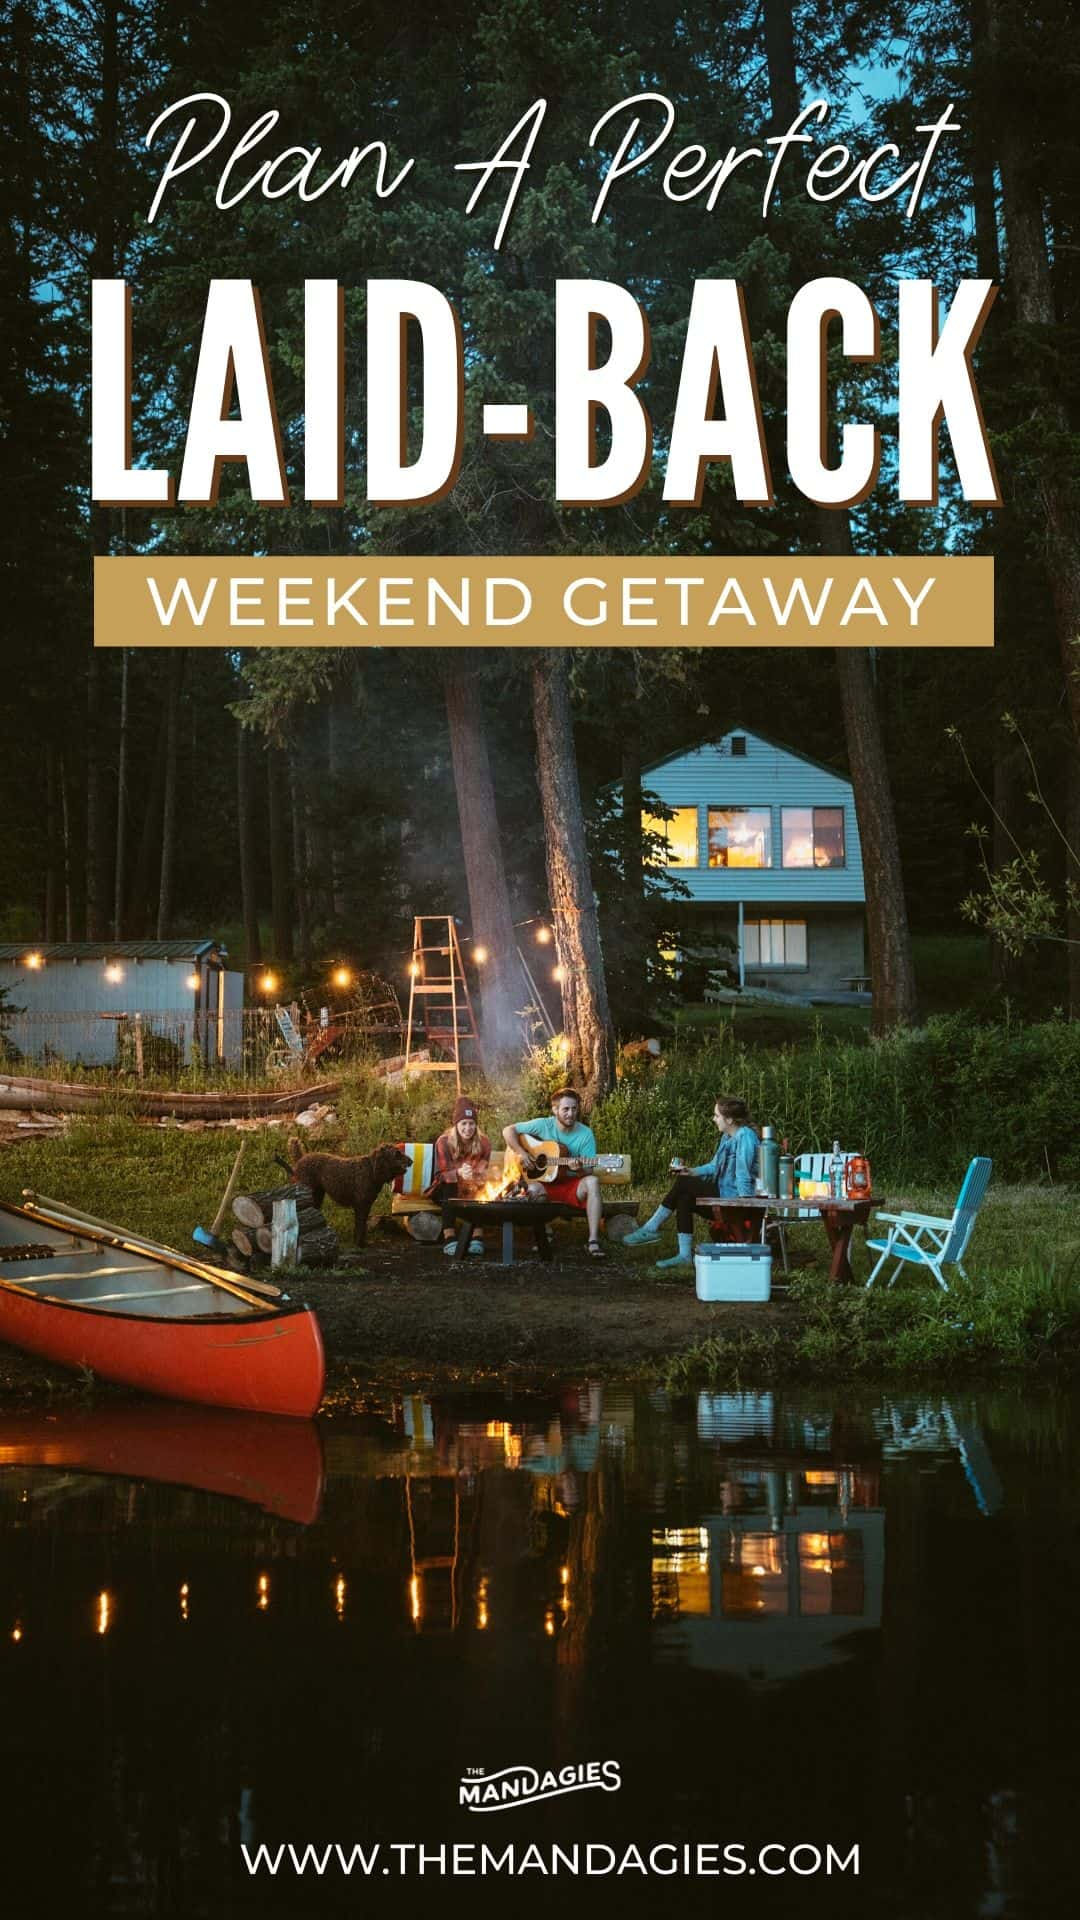 Want to plan a weekend getaway but don't want to travel far? We've got you covered! In this post, we're sharing how to plan the perfect low-key, laid back weekend getaway close to home, and sharing all the gear and activities for some fun summer memories. Save this for your next local trip inspiration! #laidback #weekendgetaway #localtravel #travel #summer #lake #canoe #fire #campfire #tacos #coffee #stanleybrand #stanleyPMI